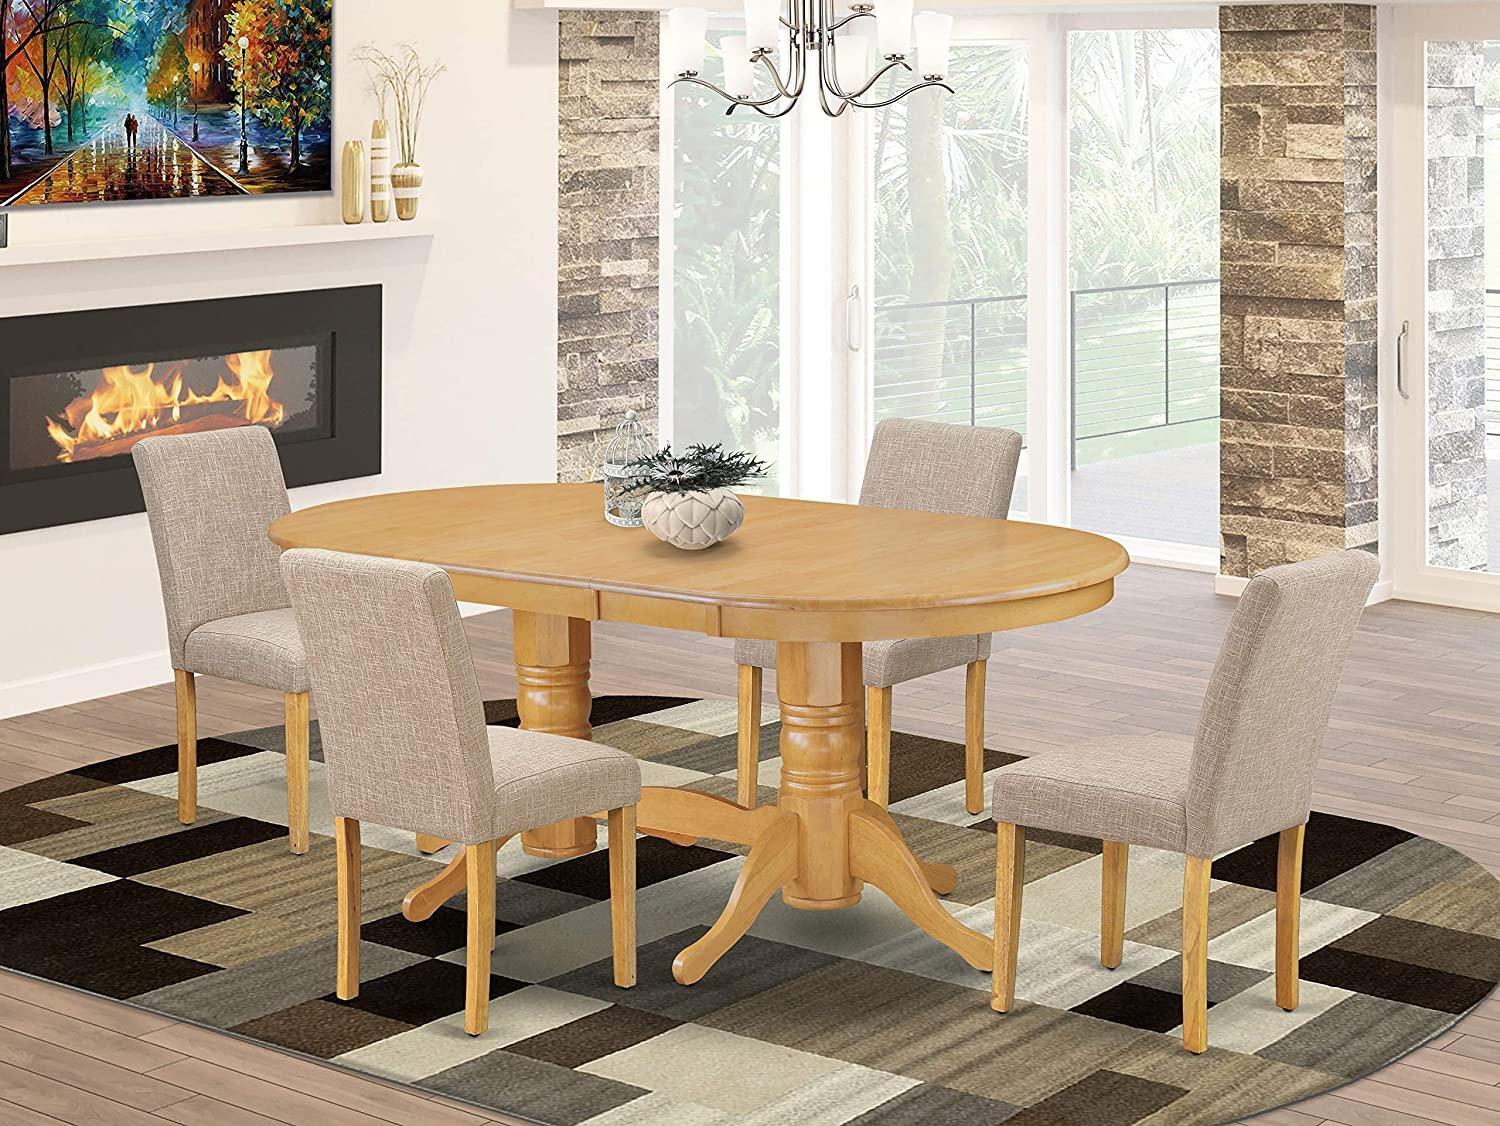 5 Pc Dining Room Set For Sales results No. specialty shop 1 4- Chai And Table Four With Parson Leaf